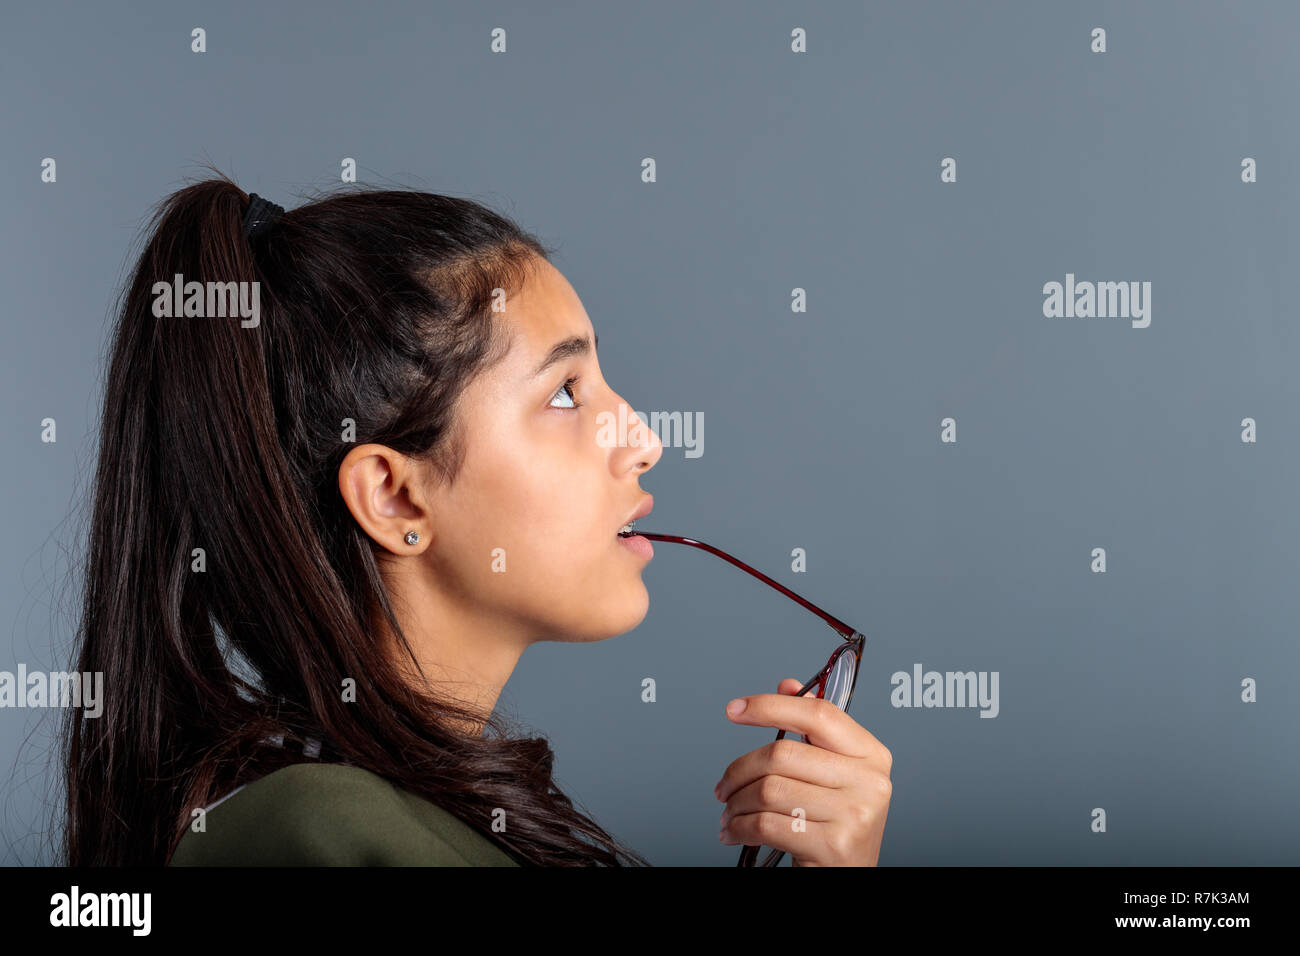 Teenage girl pondering with eyeglasses handle in mouth, profile view of brunette looking into space - Stock Image